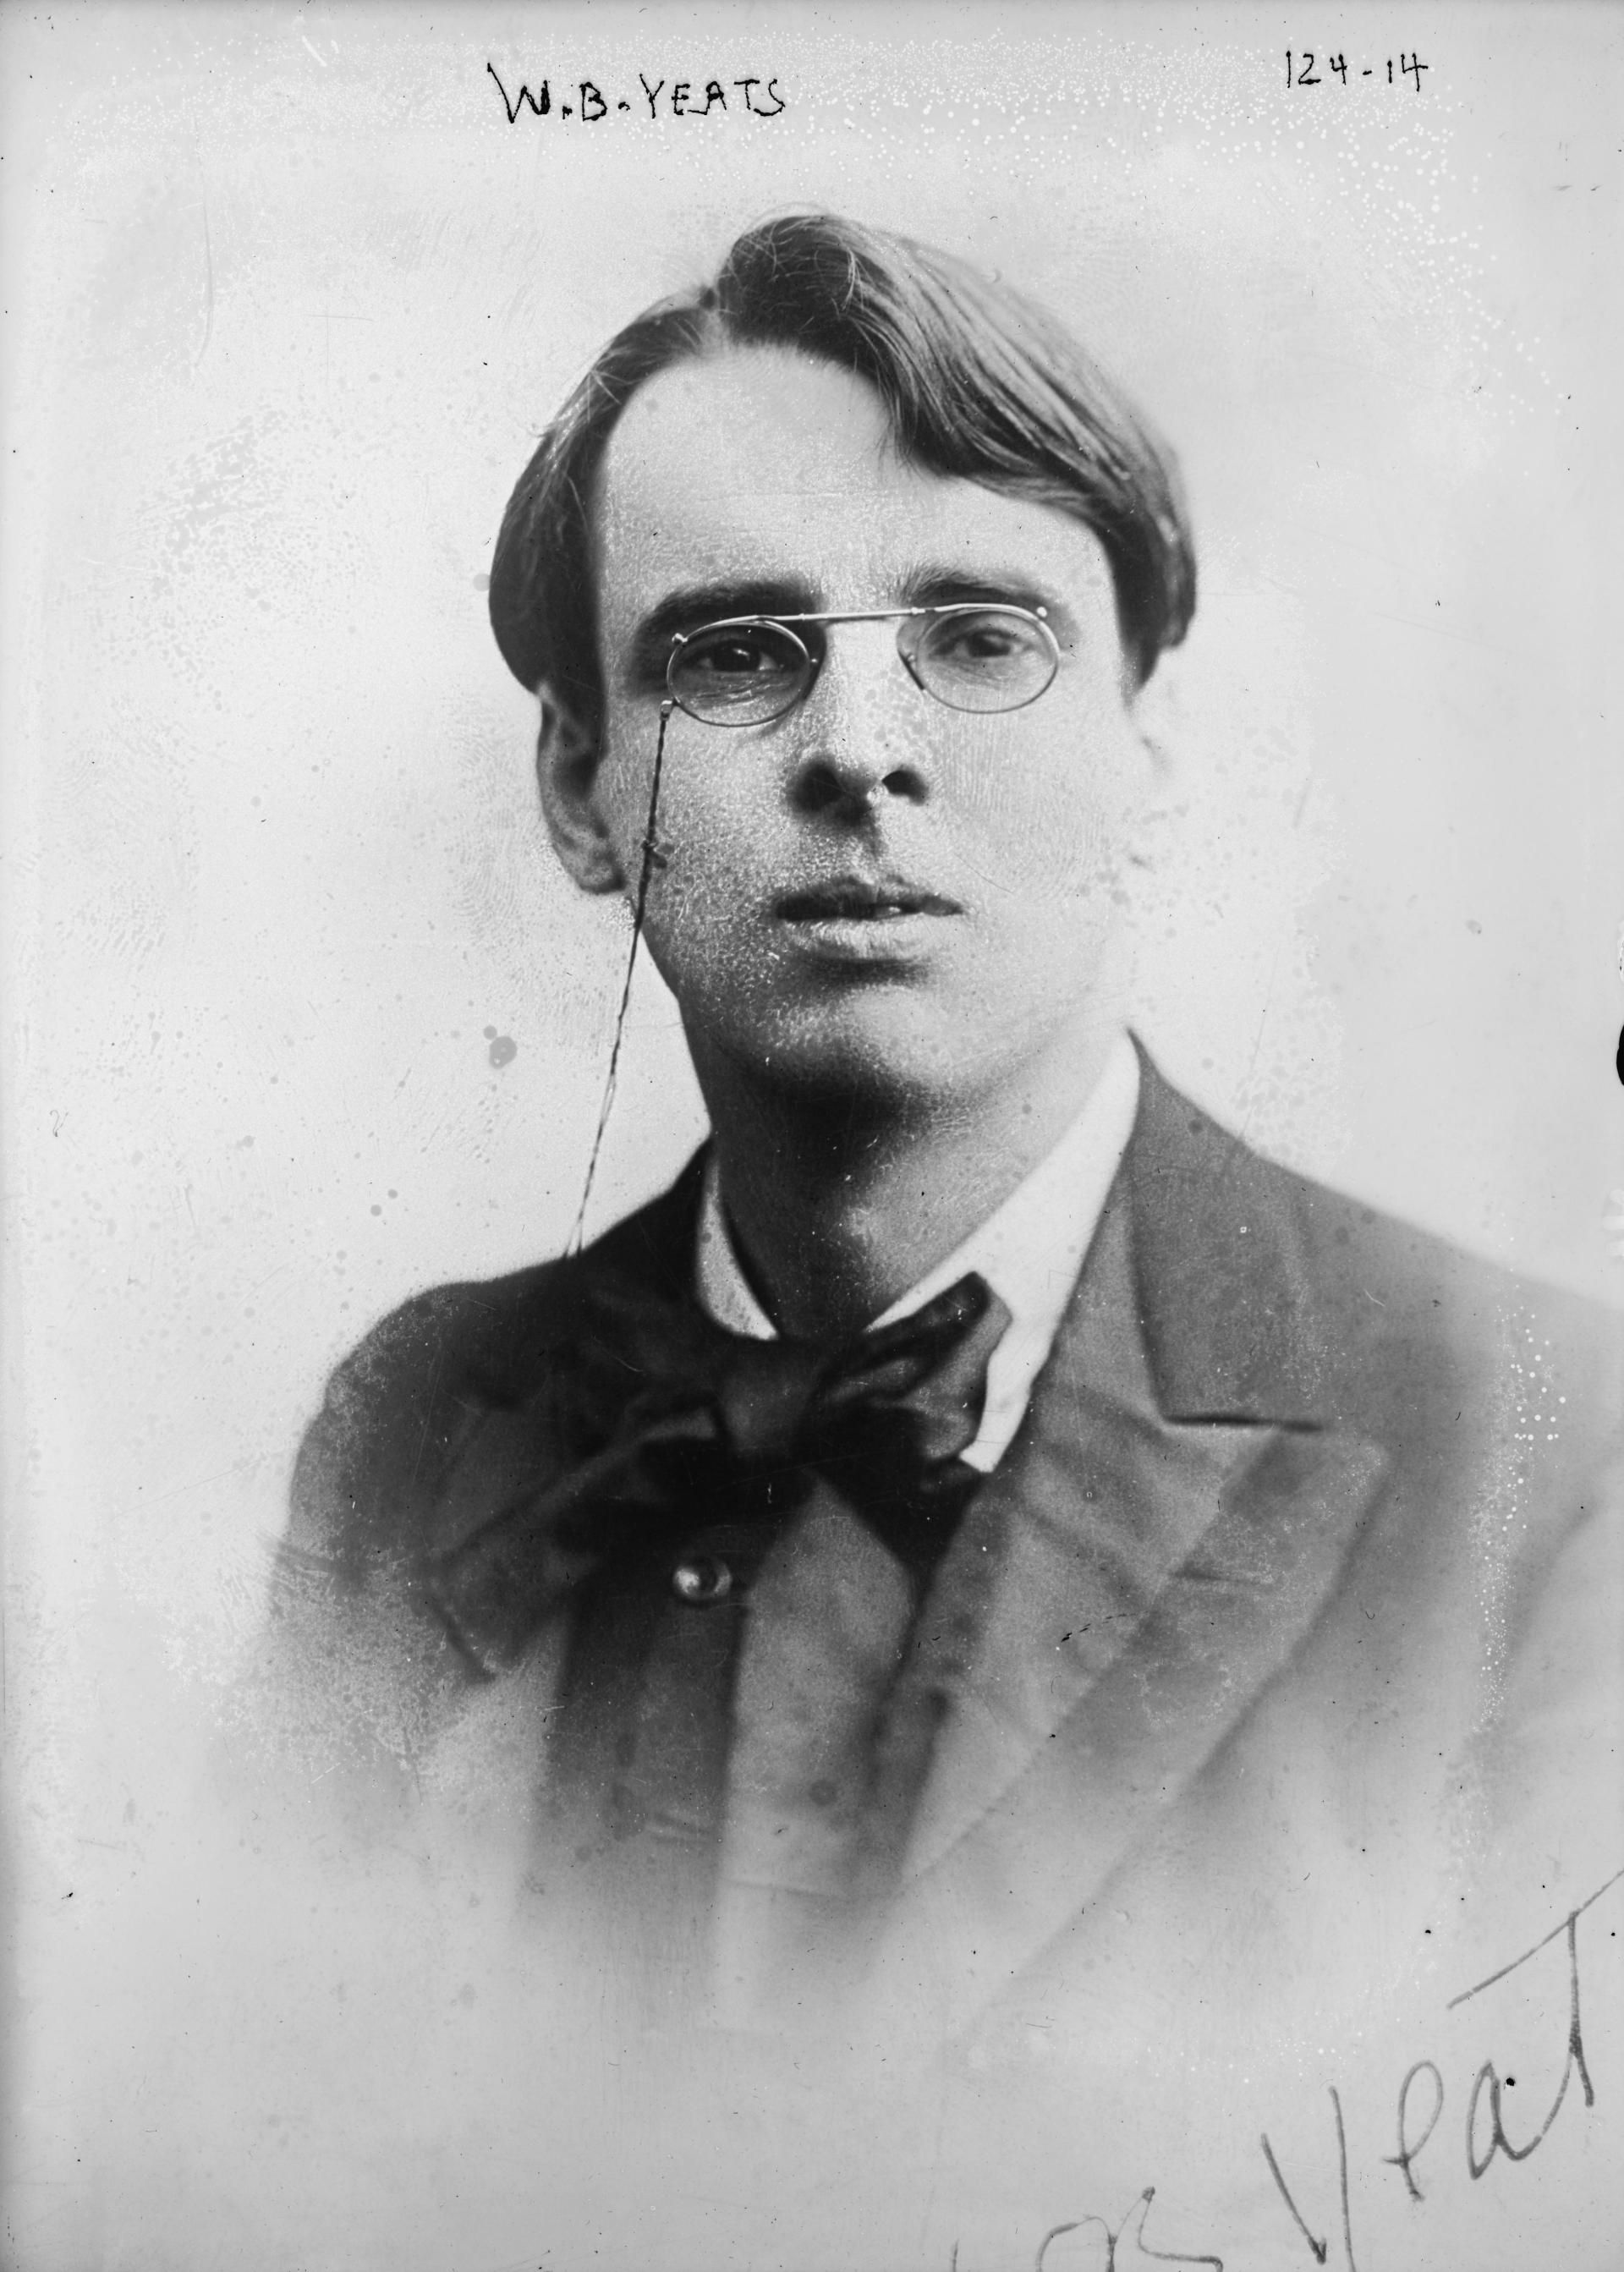 a literary analysis of the symbolism in long legged fly by william butler yeats (feb a literary analysis of the symbolism in long legged fly by william butler yeats 1, 1904) in budapest,.